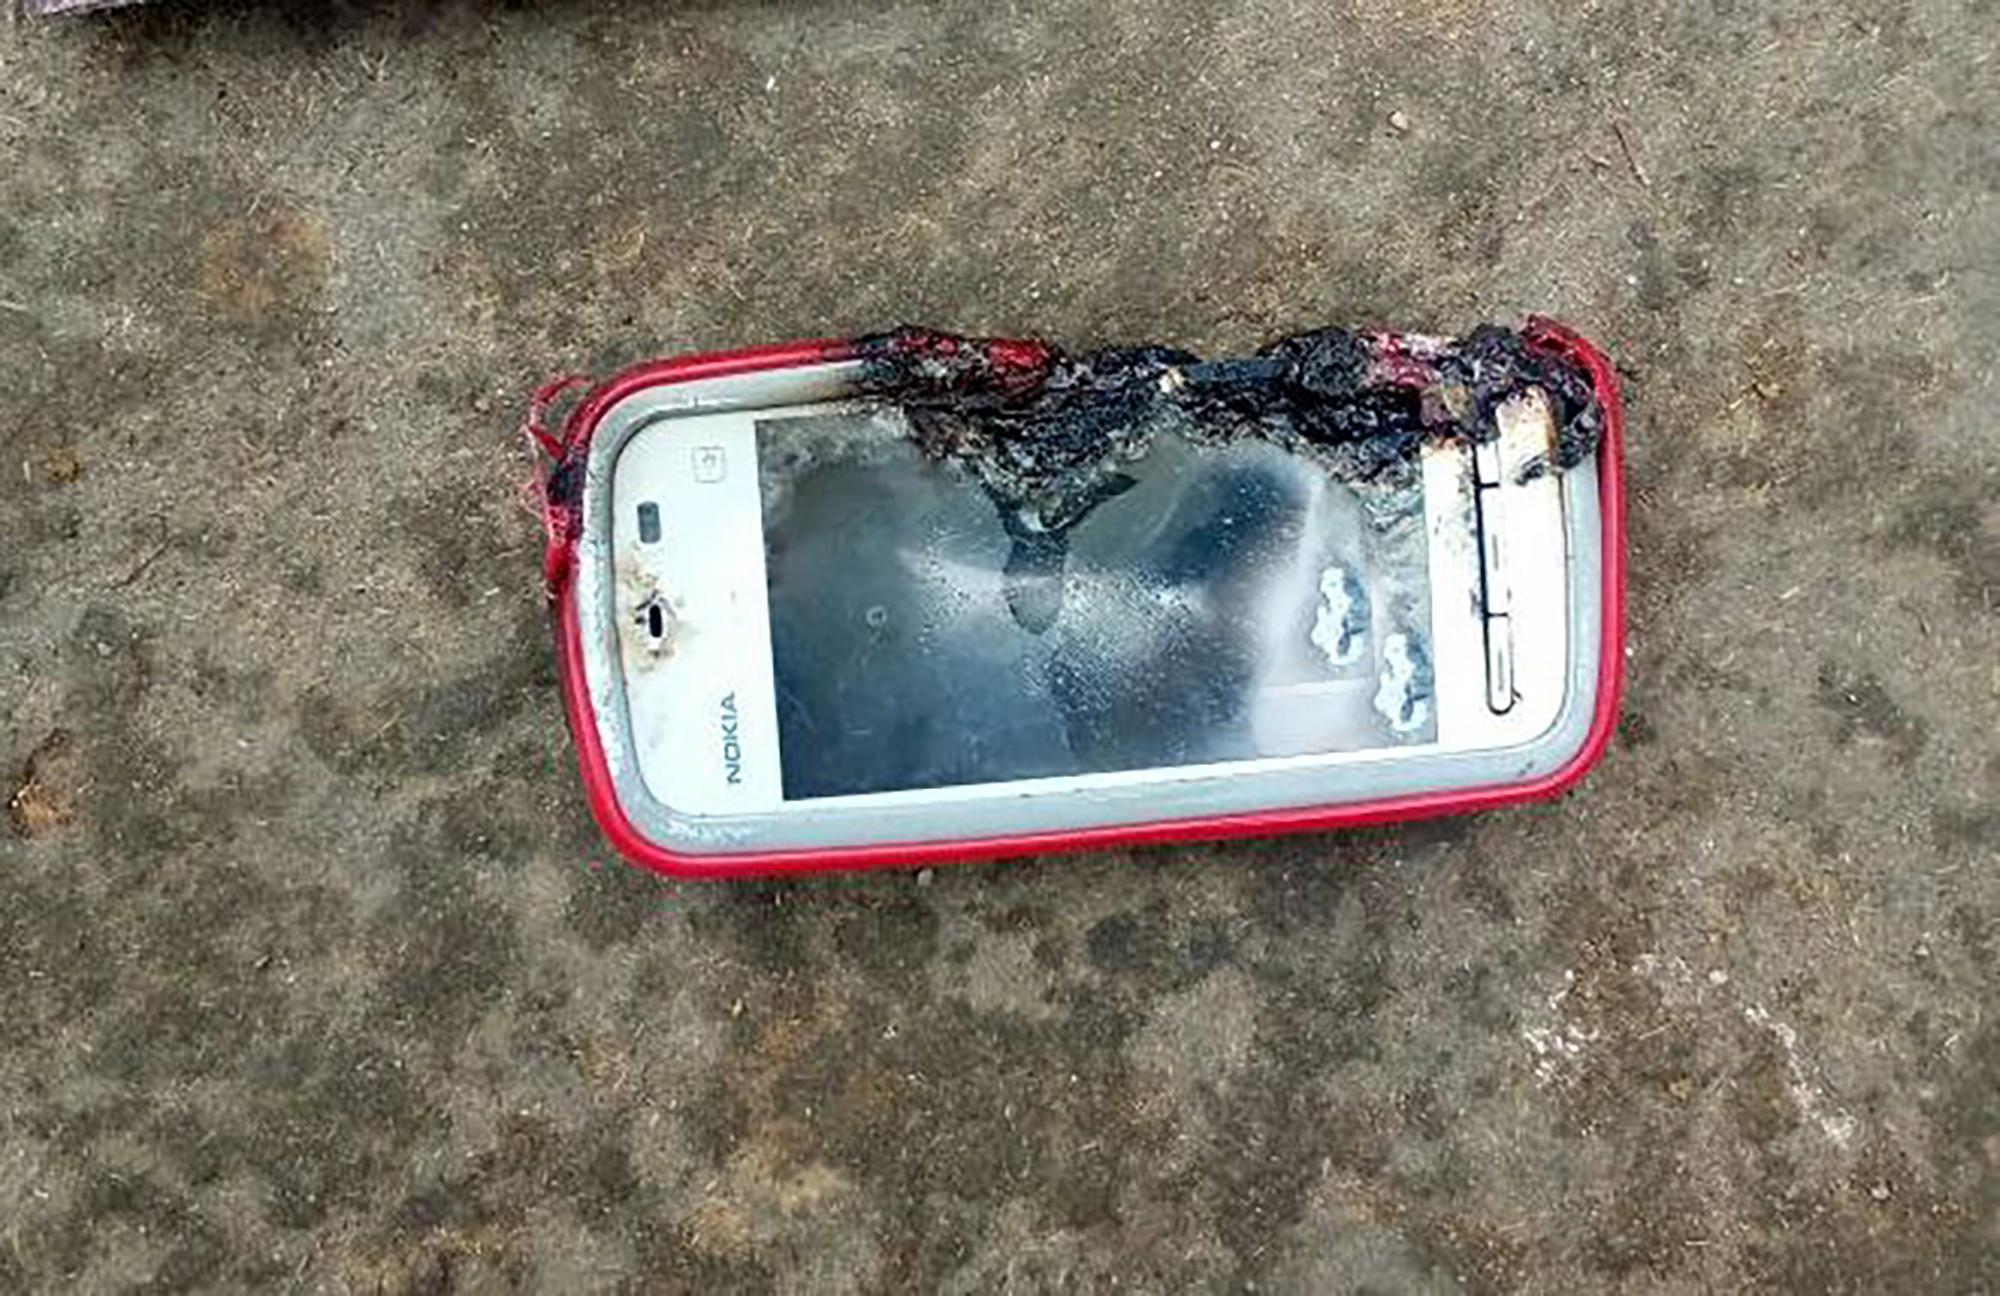 Girl, 18, killed when Nokia phone she was chatting on EXPLODED after she plugged it in